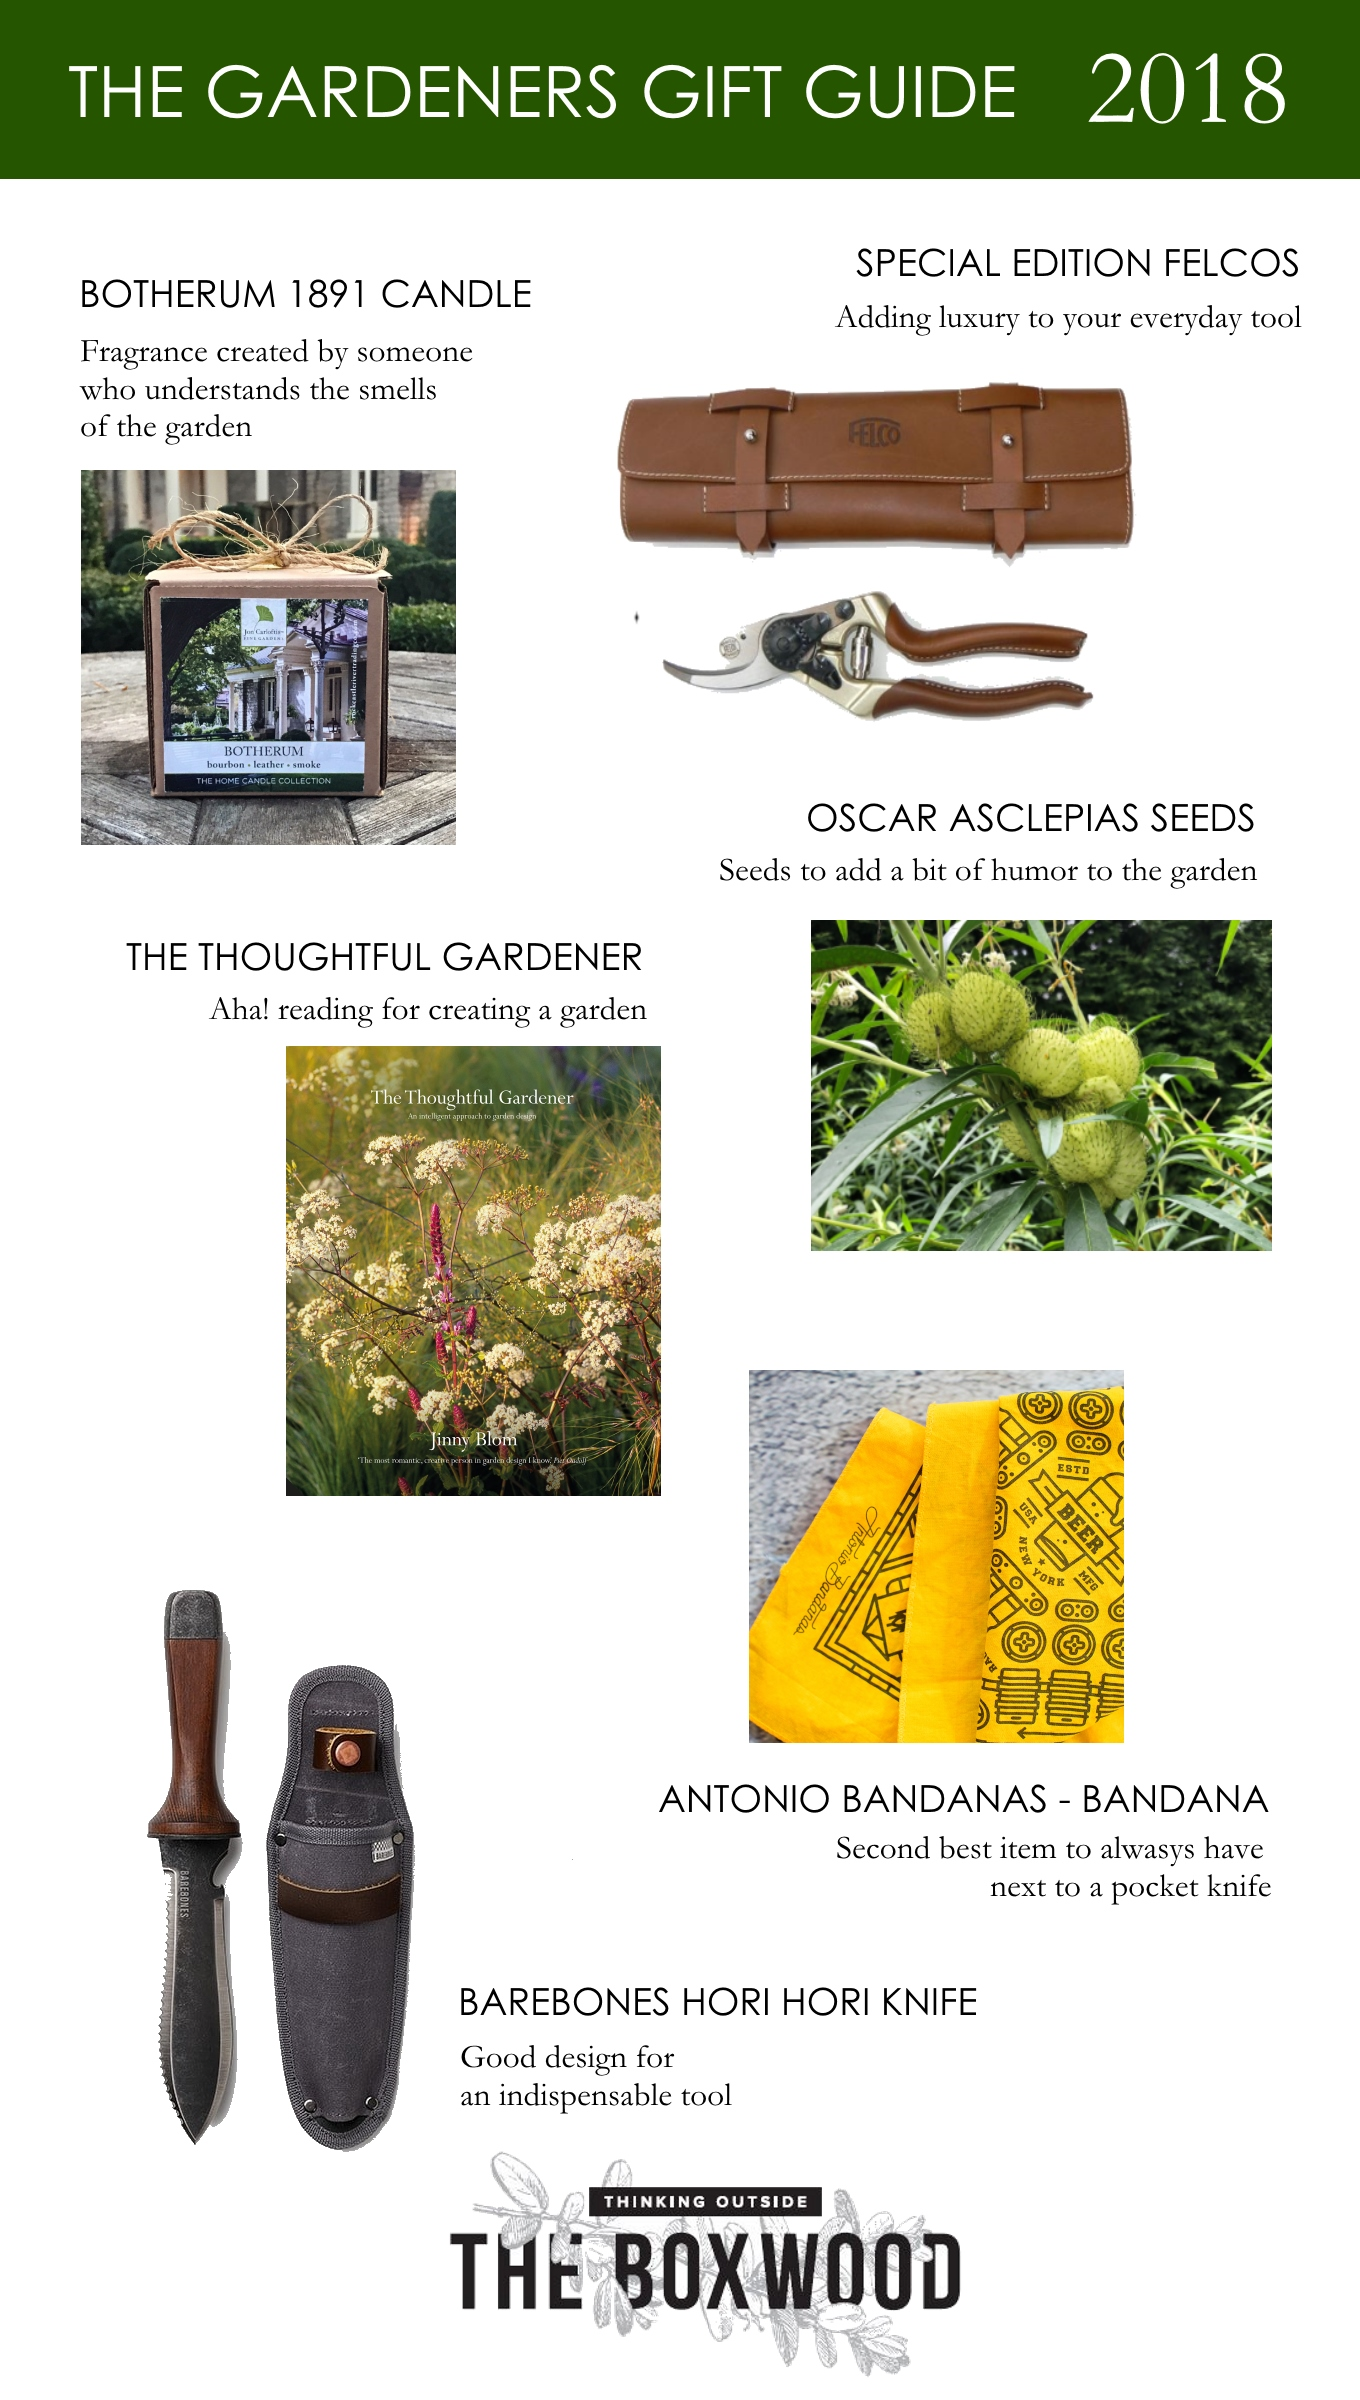 A gifting guide for gardeners based on my favorite finds from the past year. Thinking Outside the Boxwood